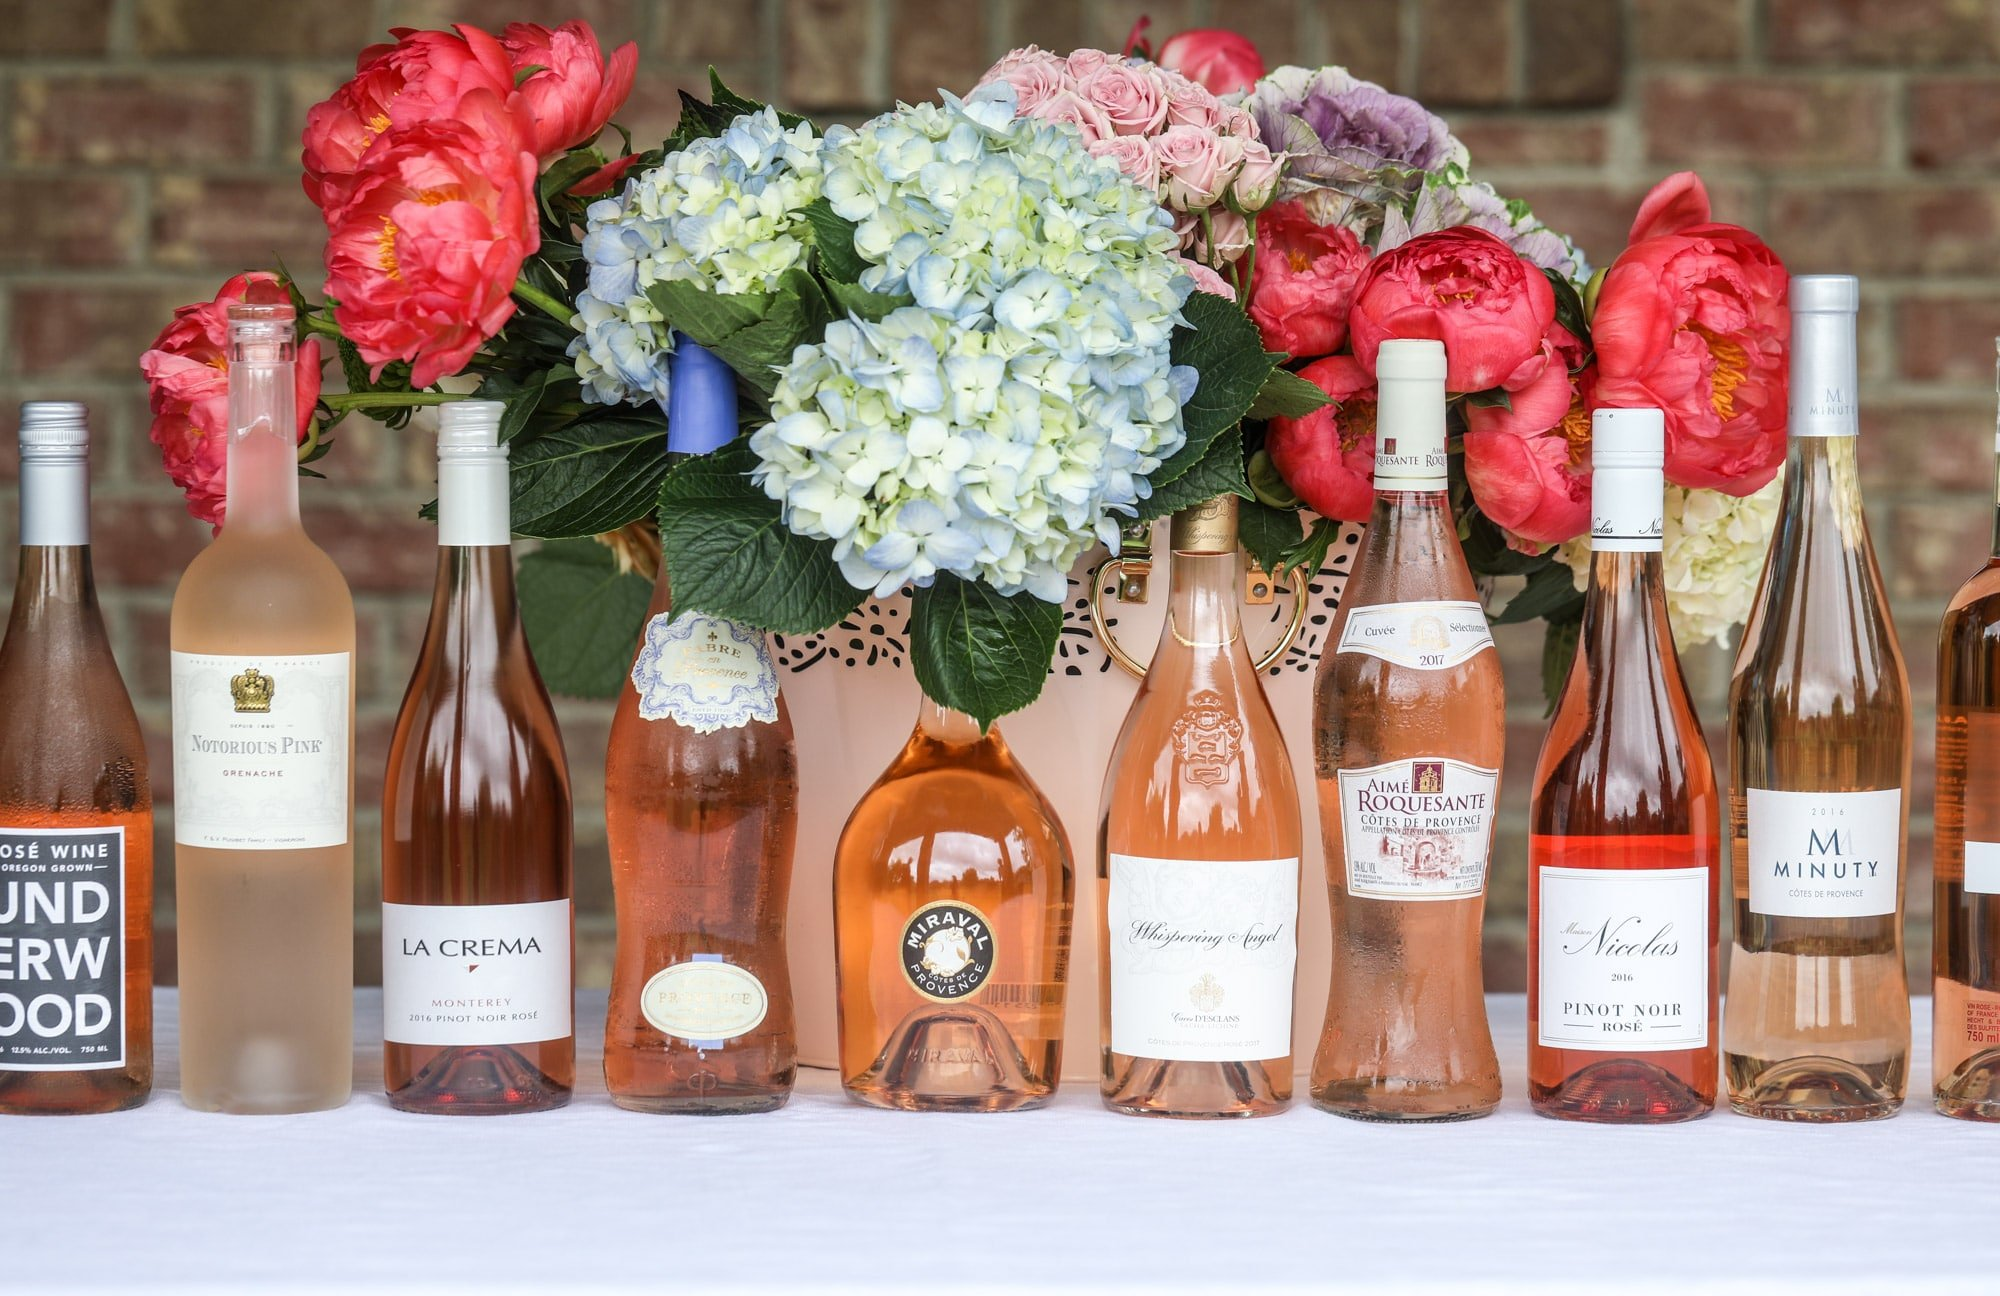 The best rosé to drink - all here in one epic summer guide for you! I'm sharing my personal favorite top ten rosé wines to drink in summer 2018, along with the perfect cheese board and snacks to go with. I howsweeteats.com #rosé #rose #summer #2018 #cheeseboard